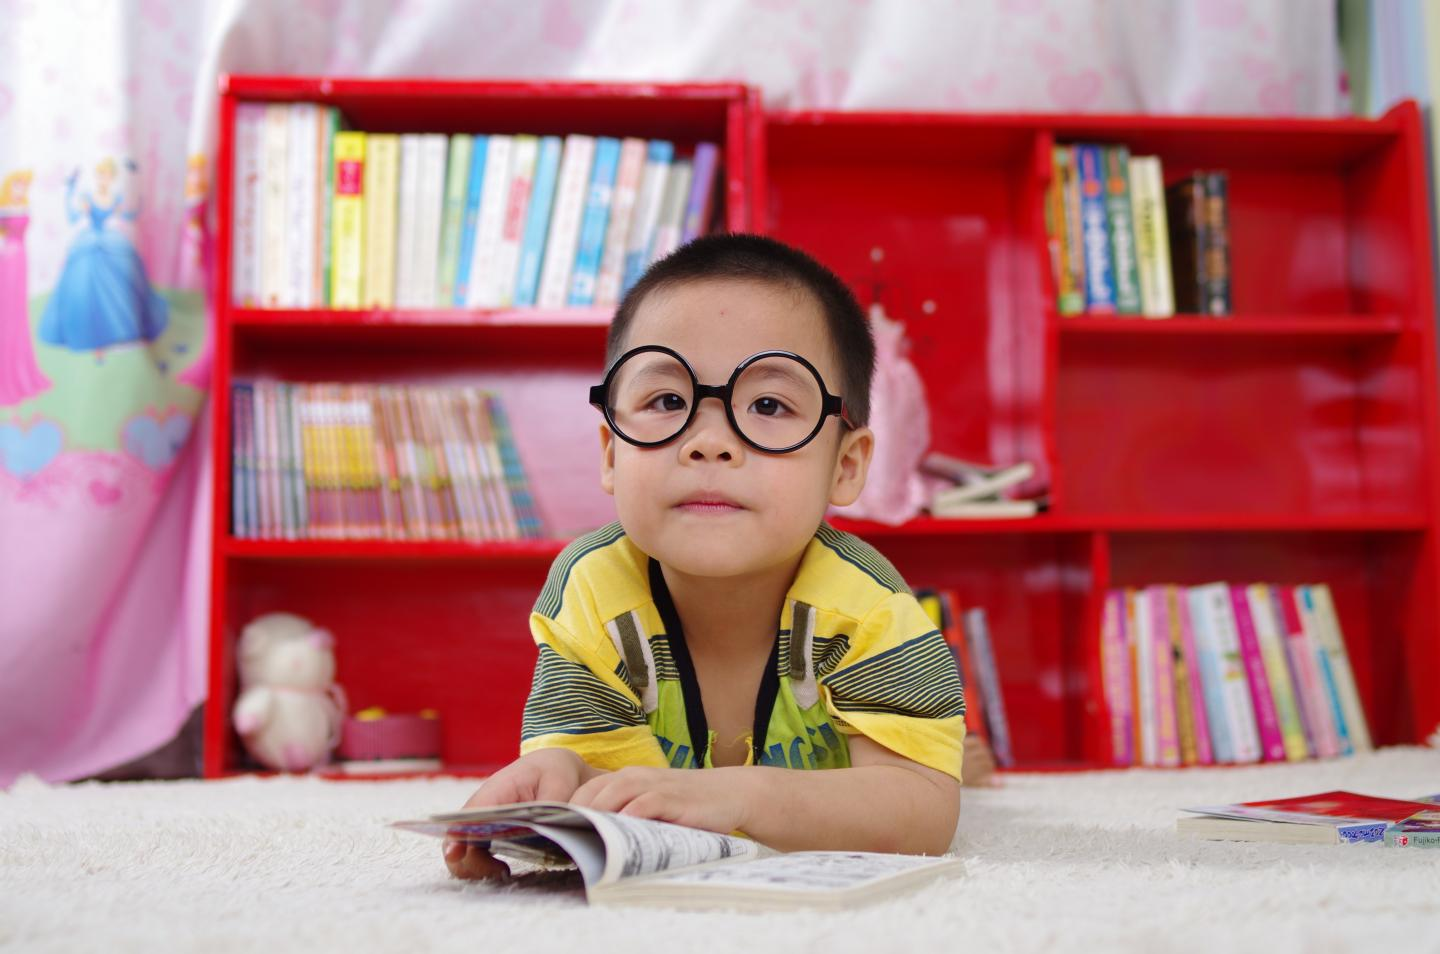 Young boy wearing glasses reading at school